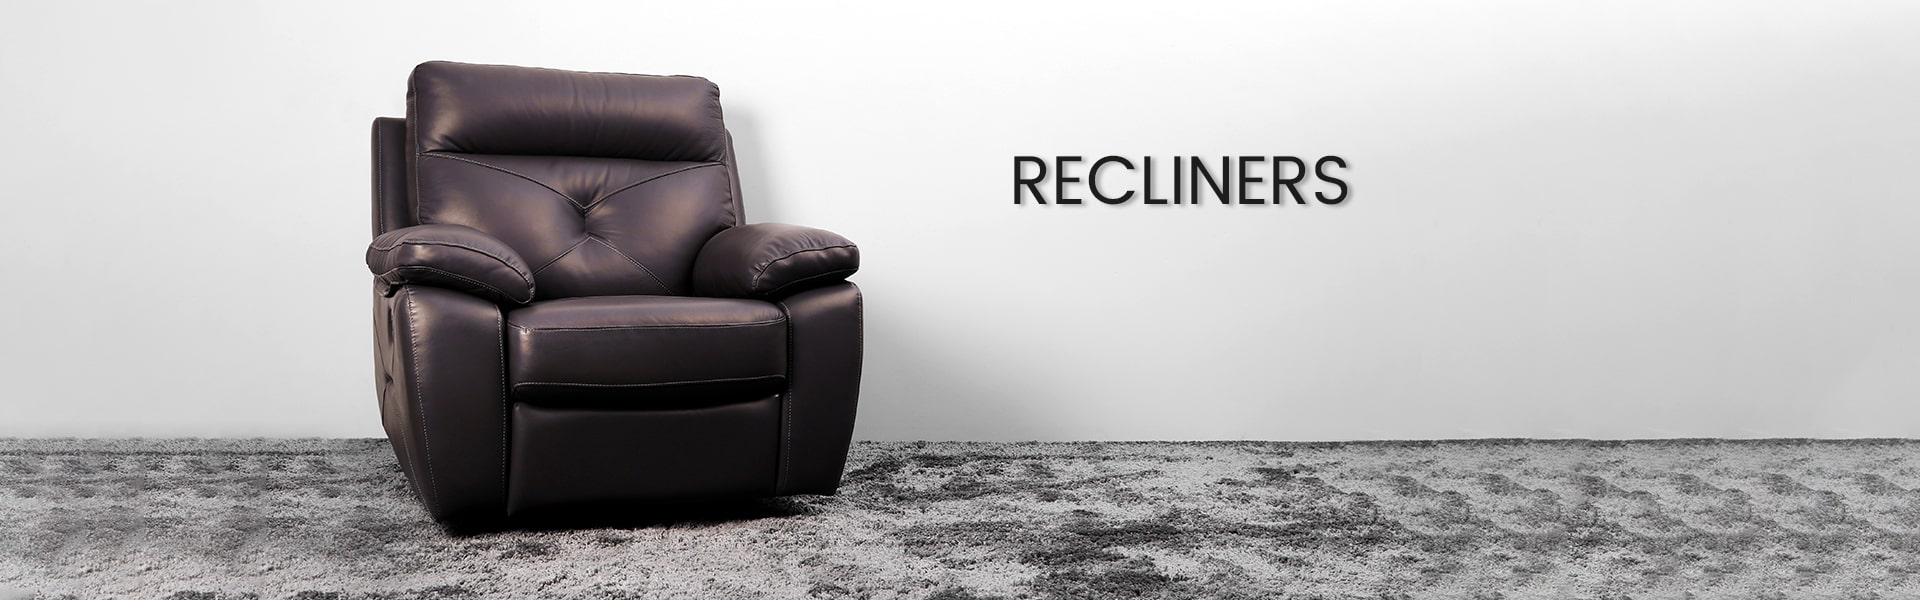 Recliners Sofa Set